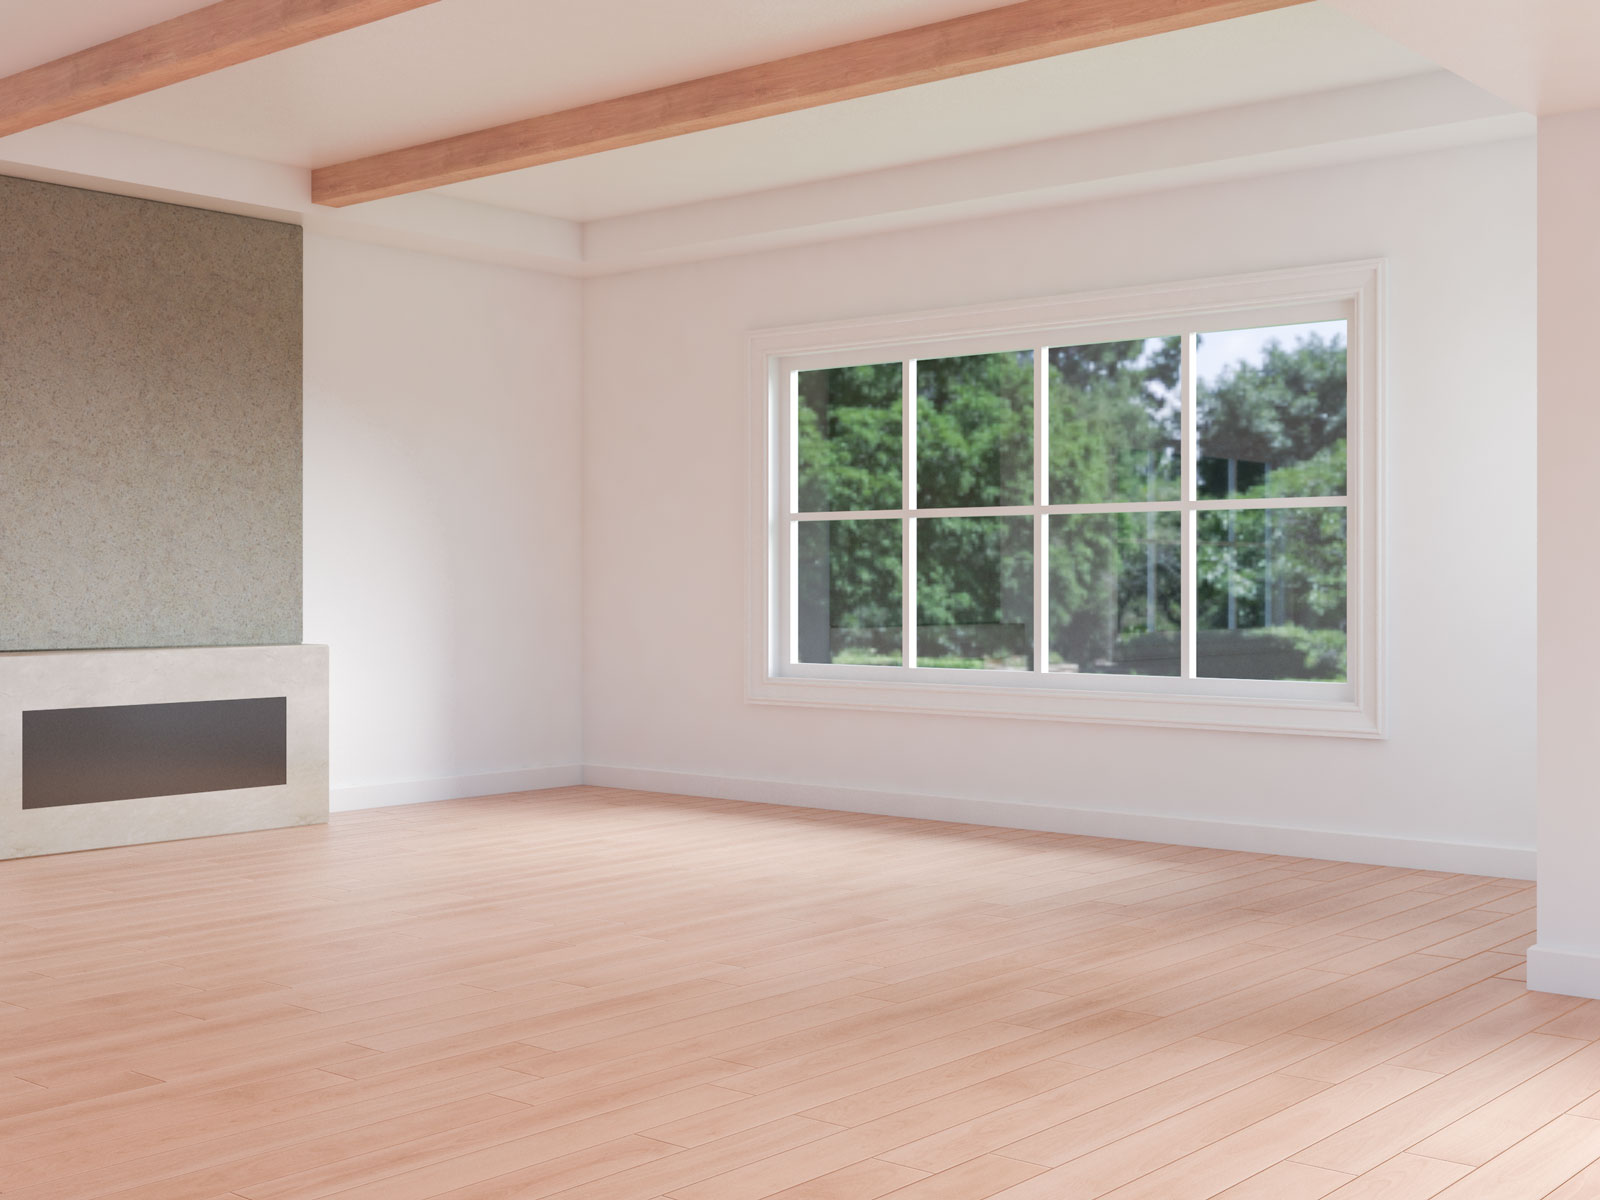 White walls with red oak flooring